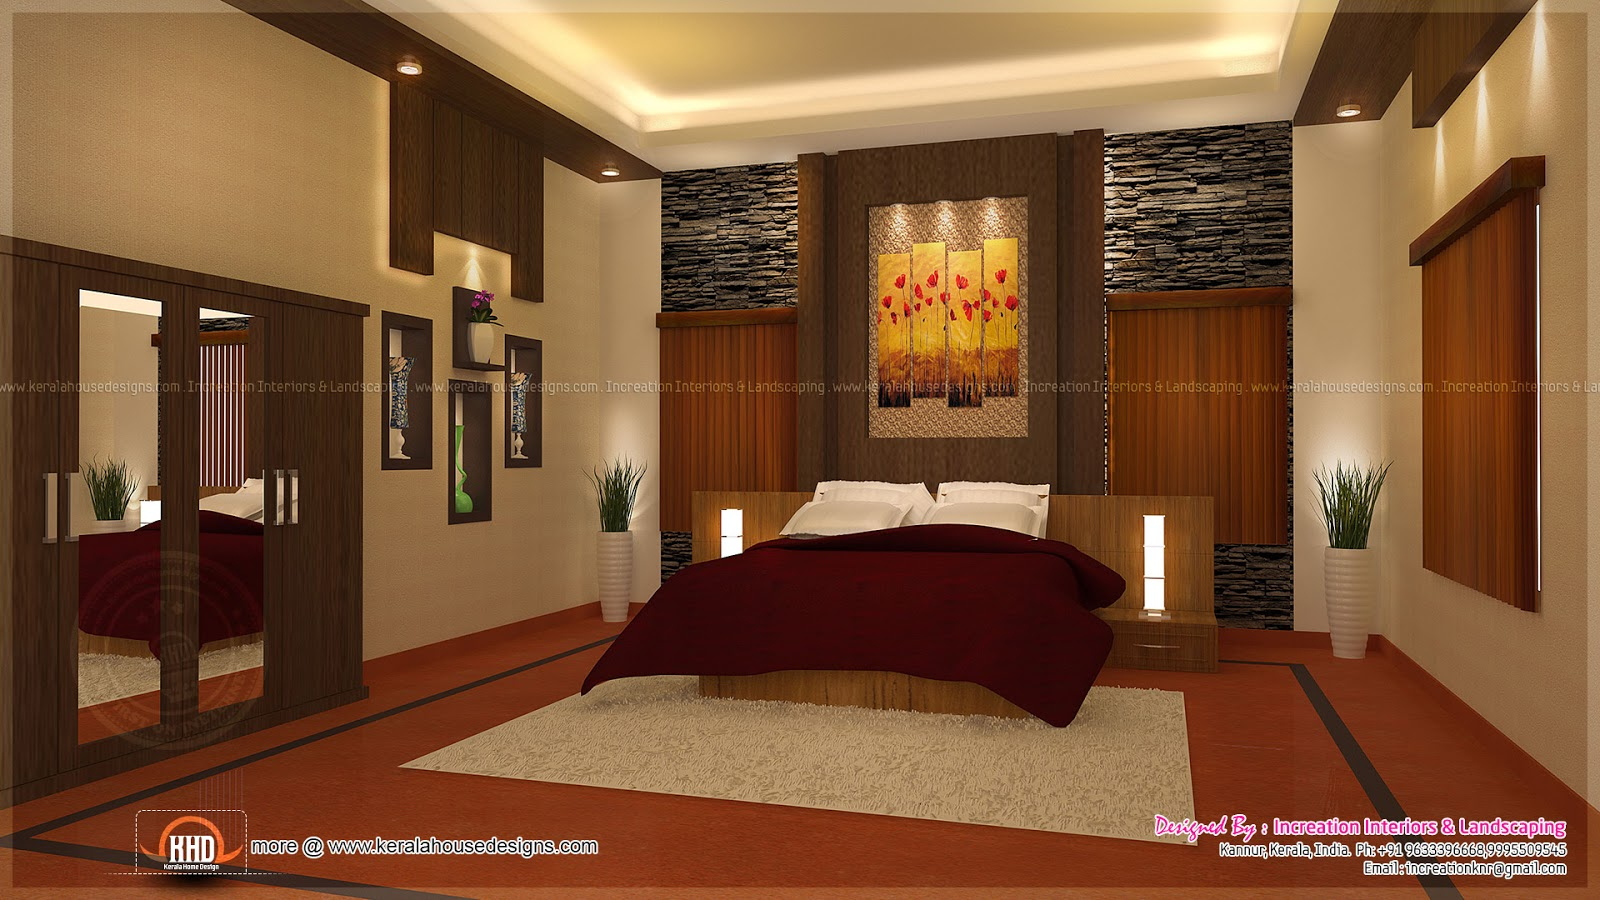 Master bedroom interior - Home interior designs ...